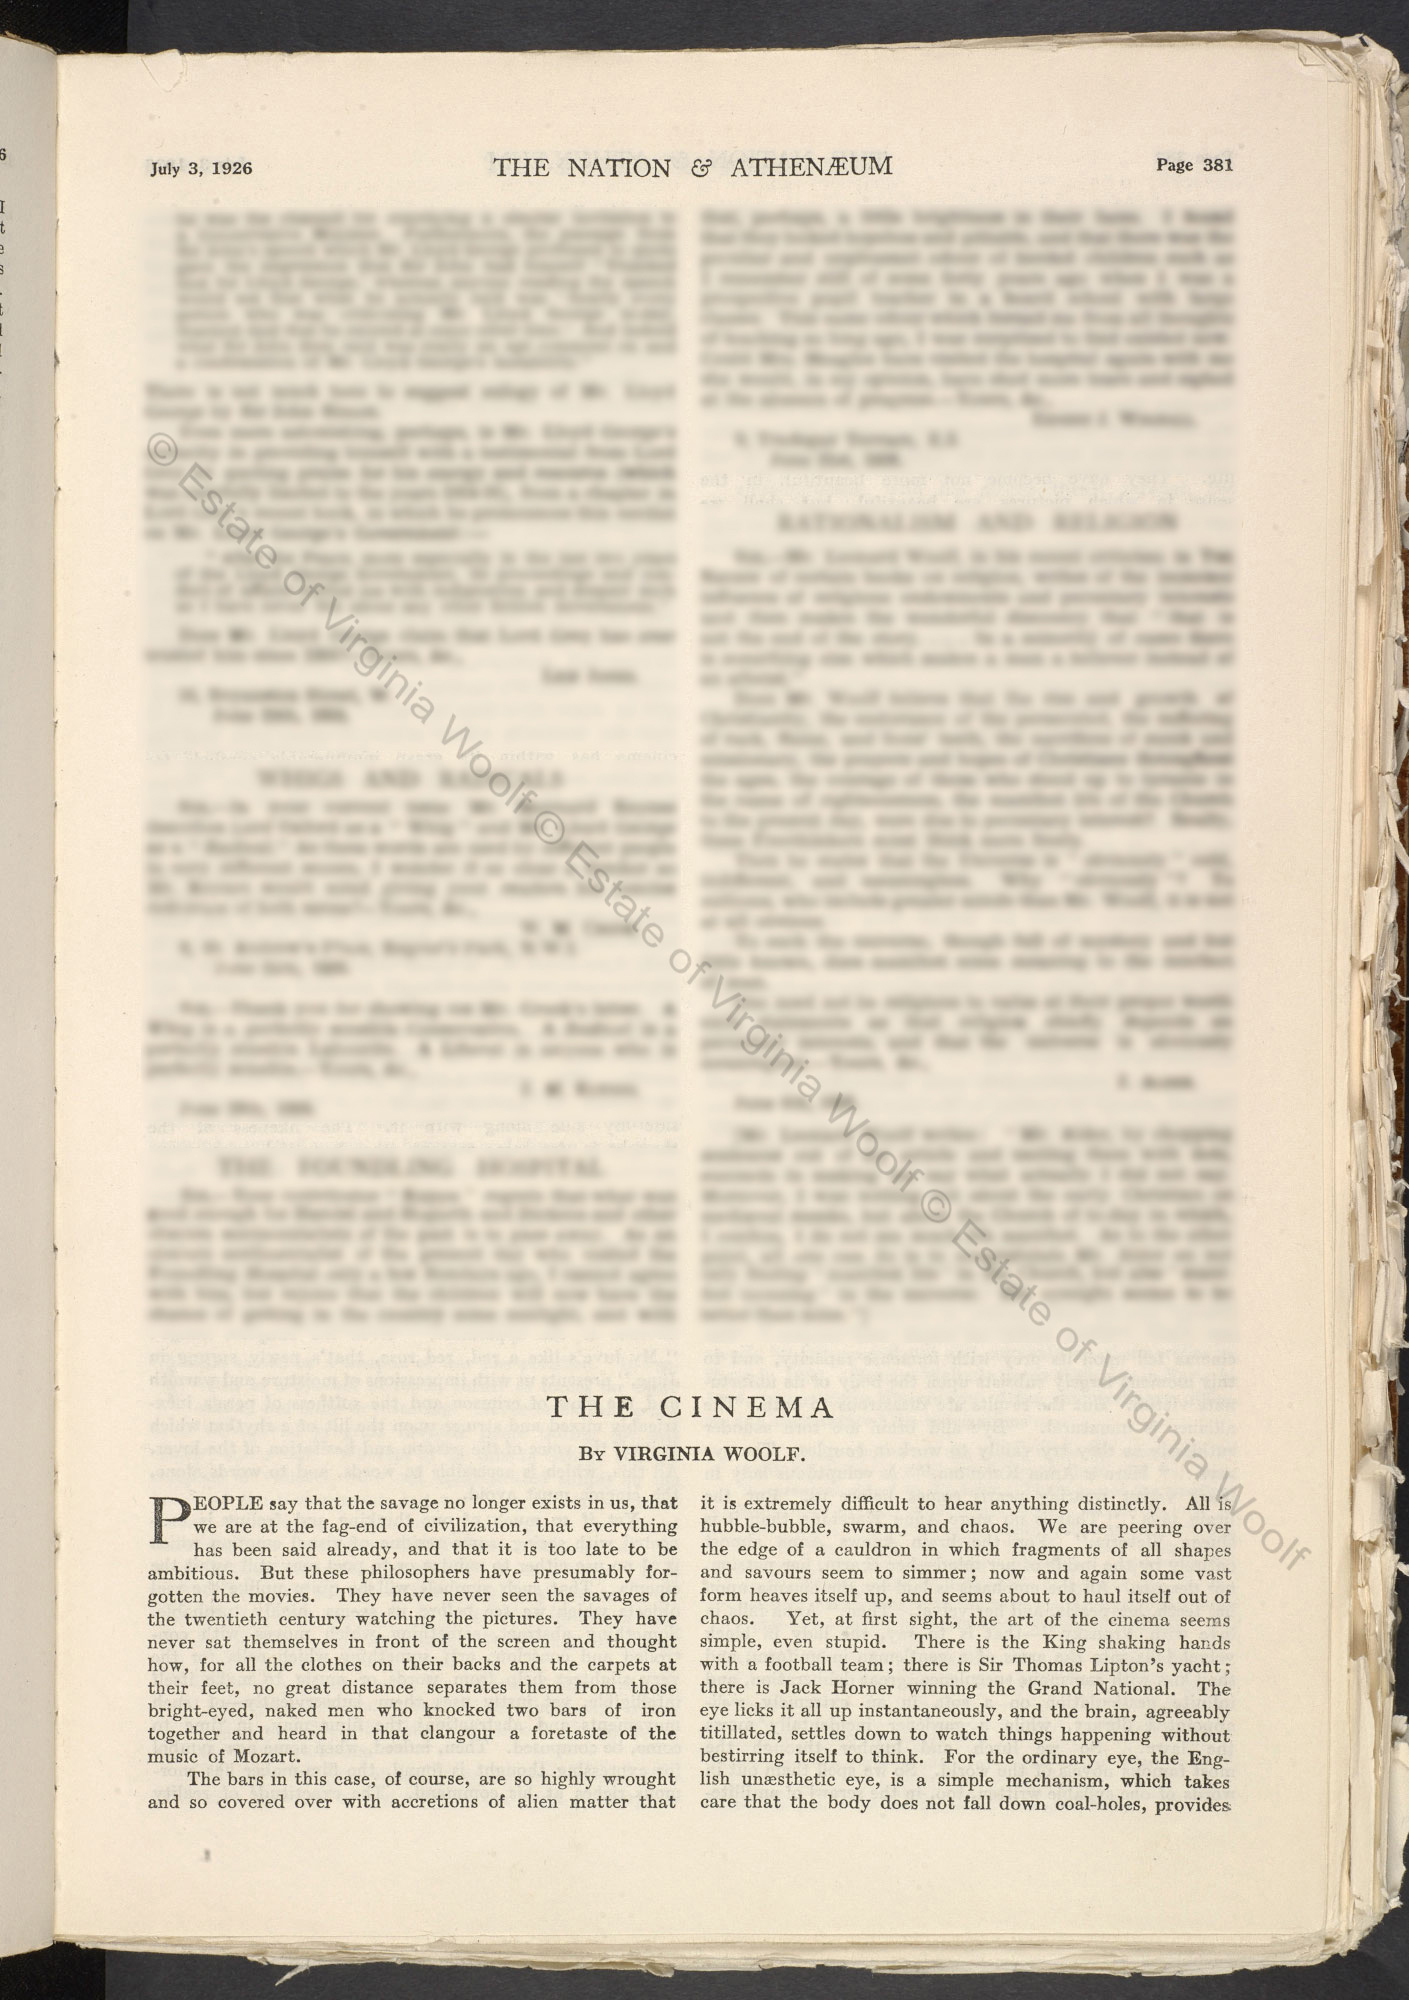 'The Cinema' by Virginia Woolf, from The Nation and Athanaeum